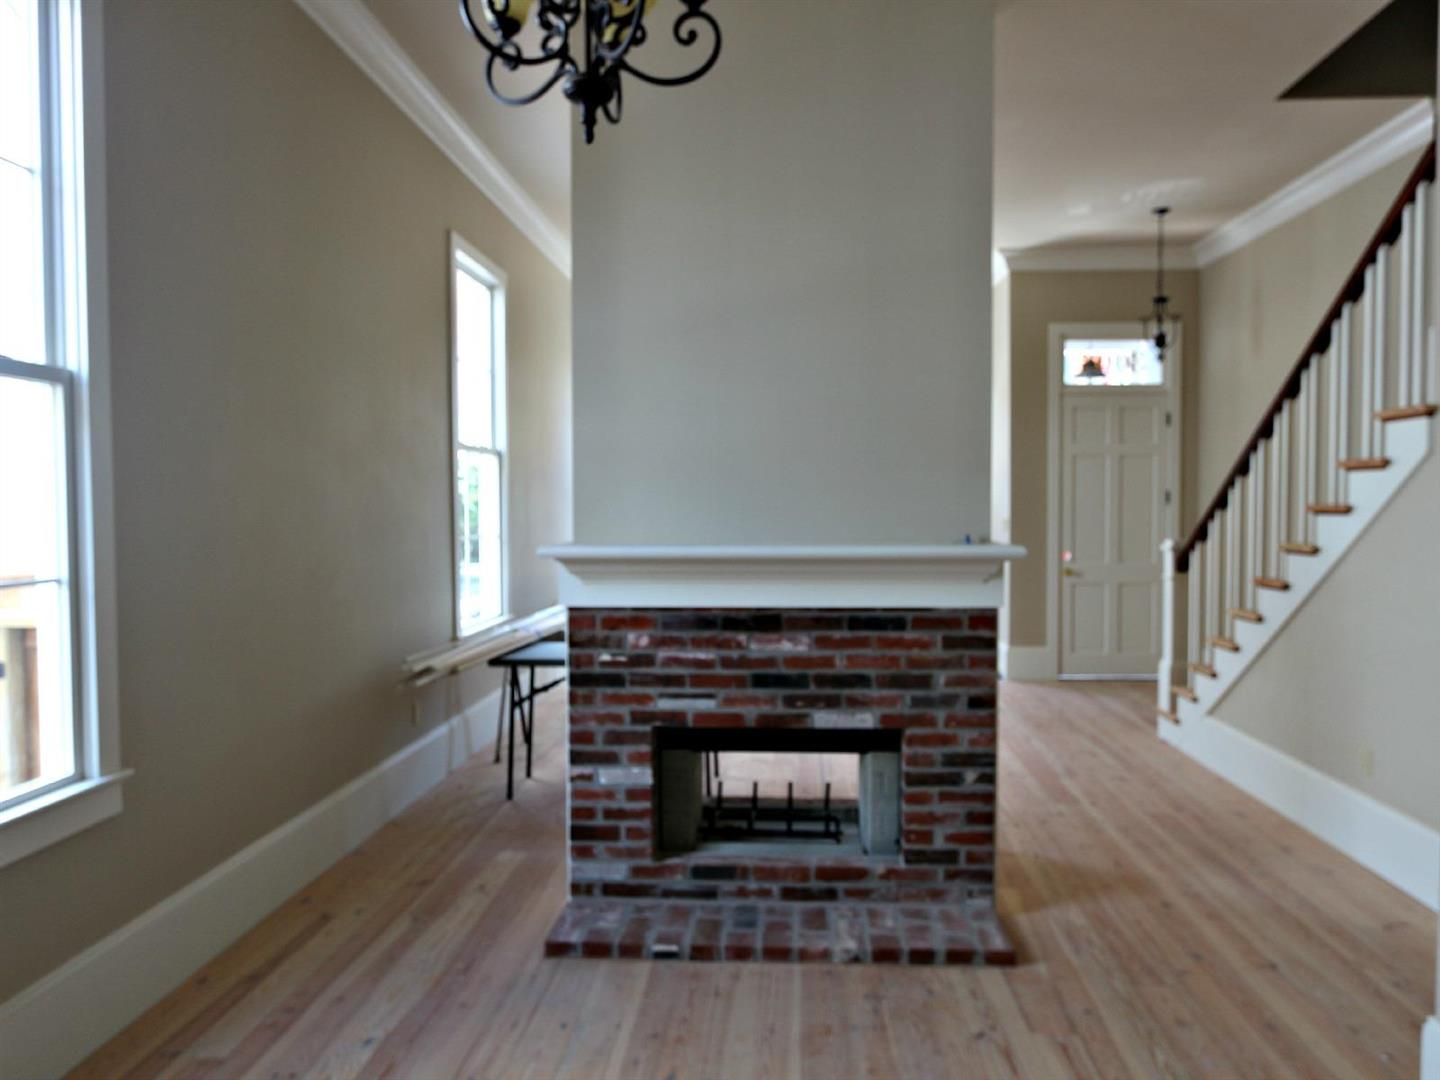 3003RoyalStreet,FireplacetoDoor.jpg